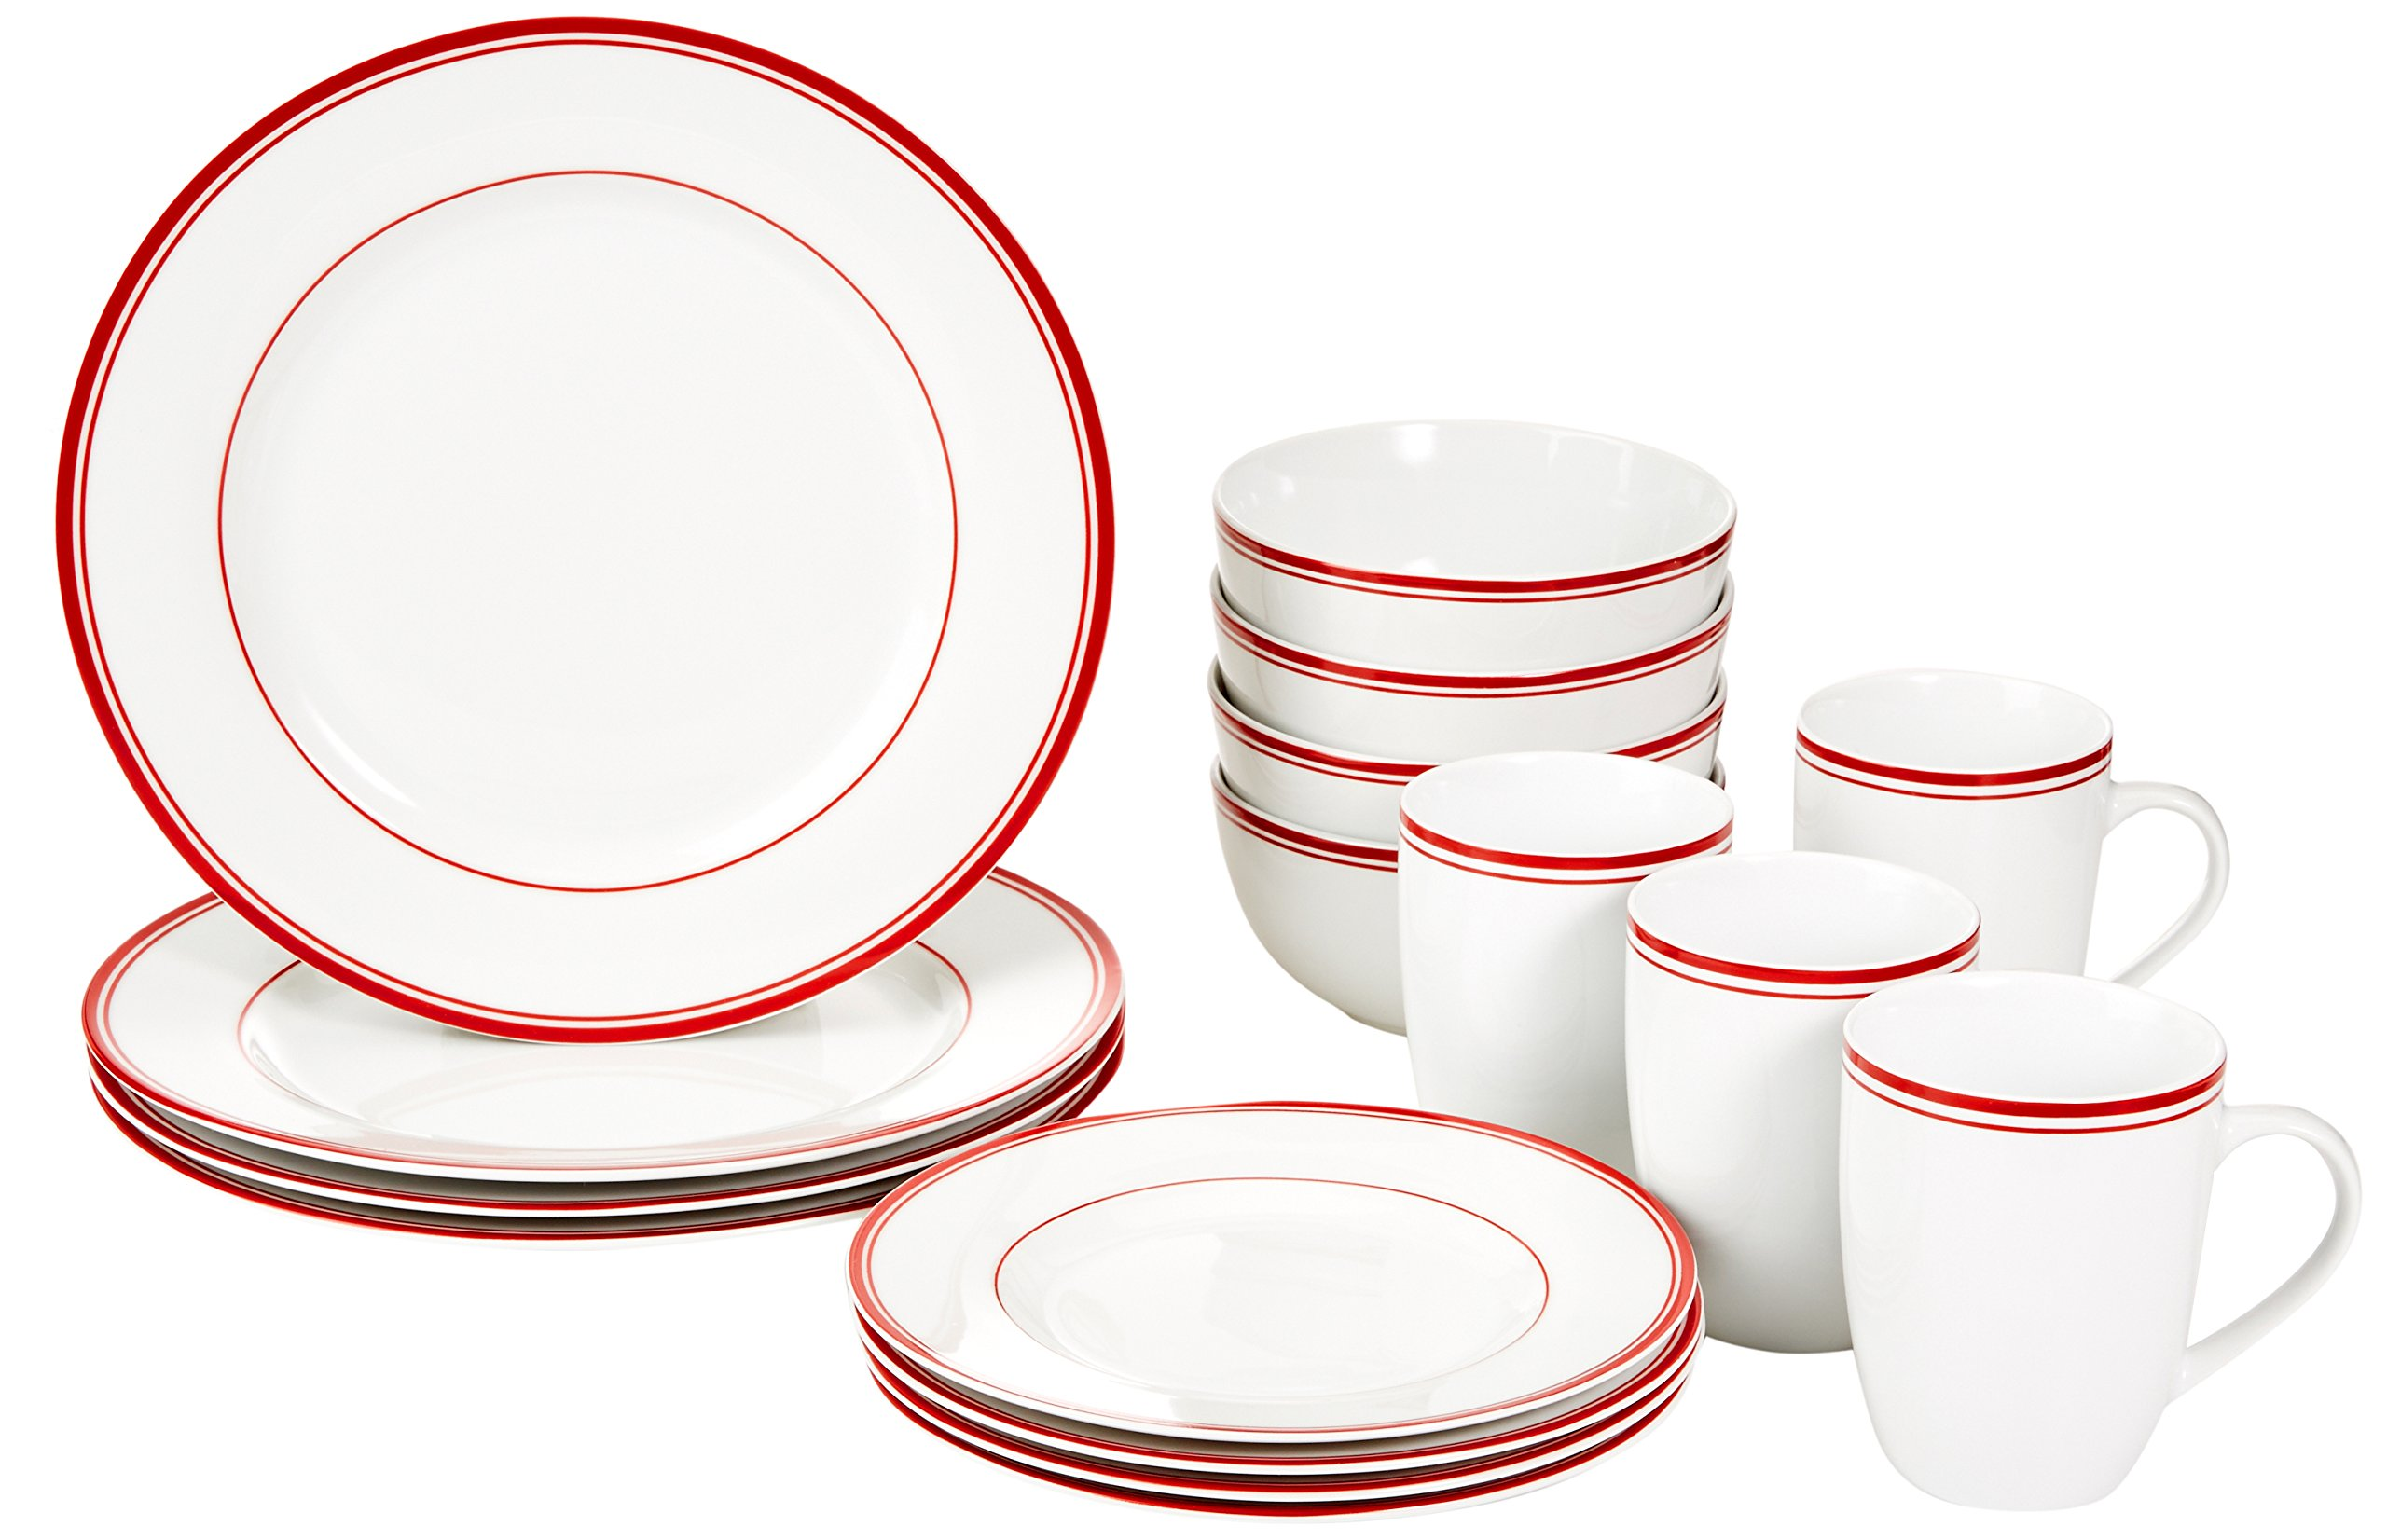 AmazonBasics 16-Piece Cafe Stripe Dinnerware Set, Service for 4 - Red by AmazonBasics